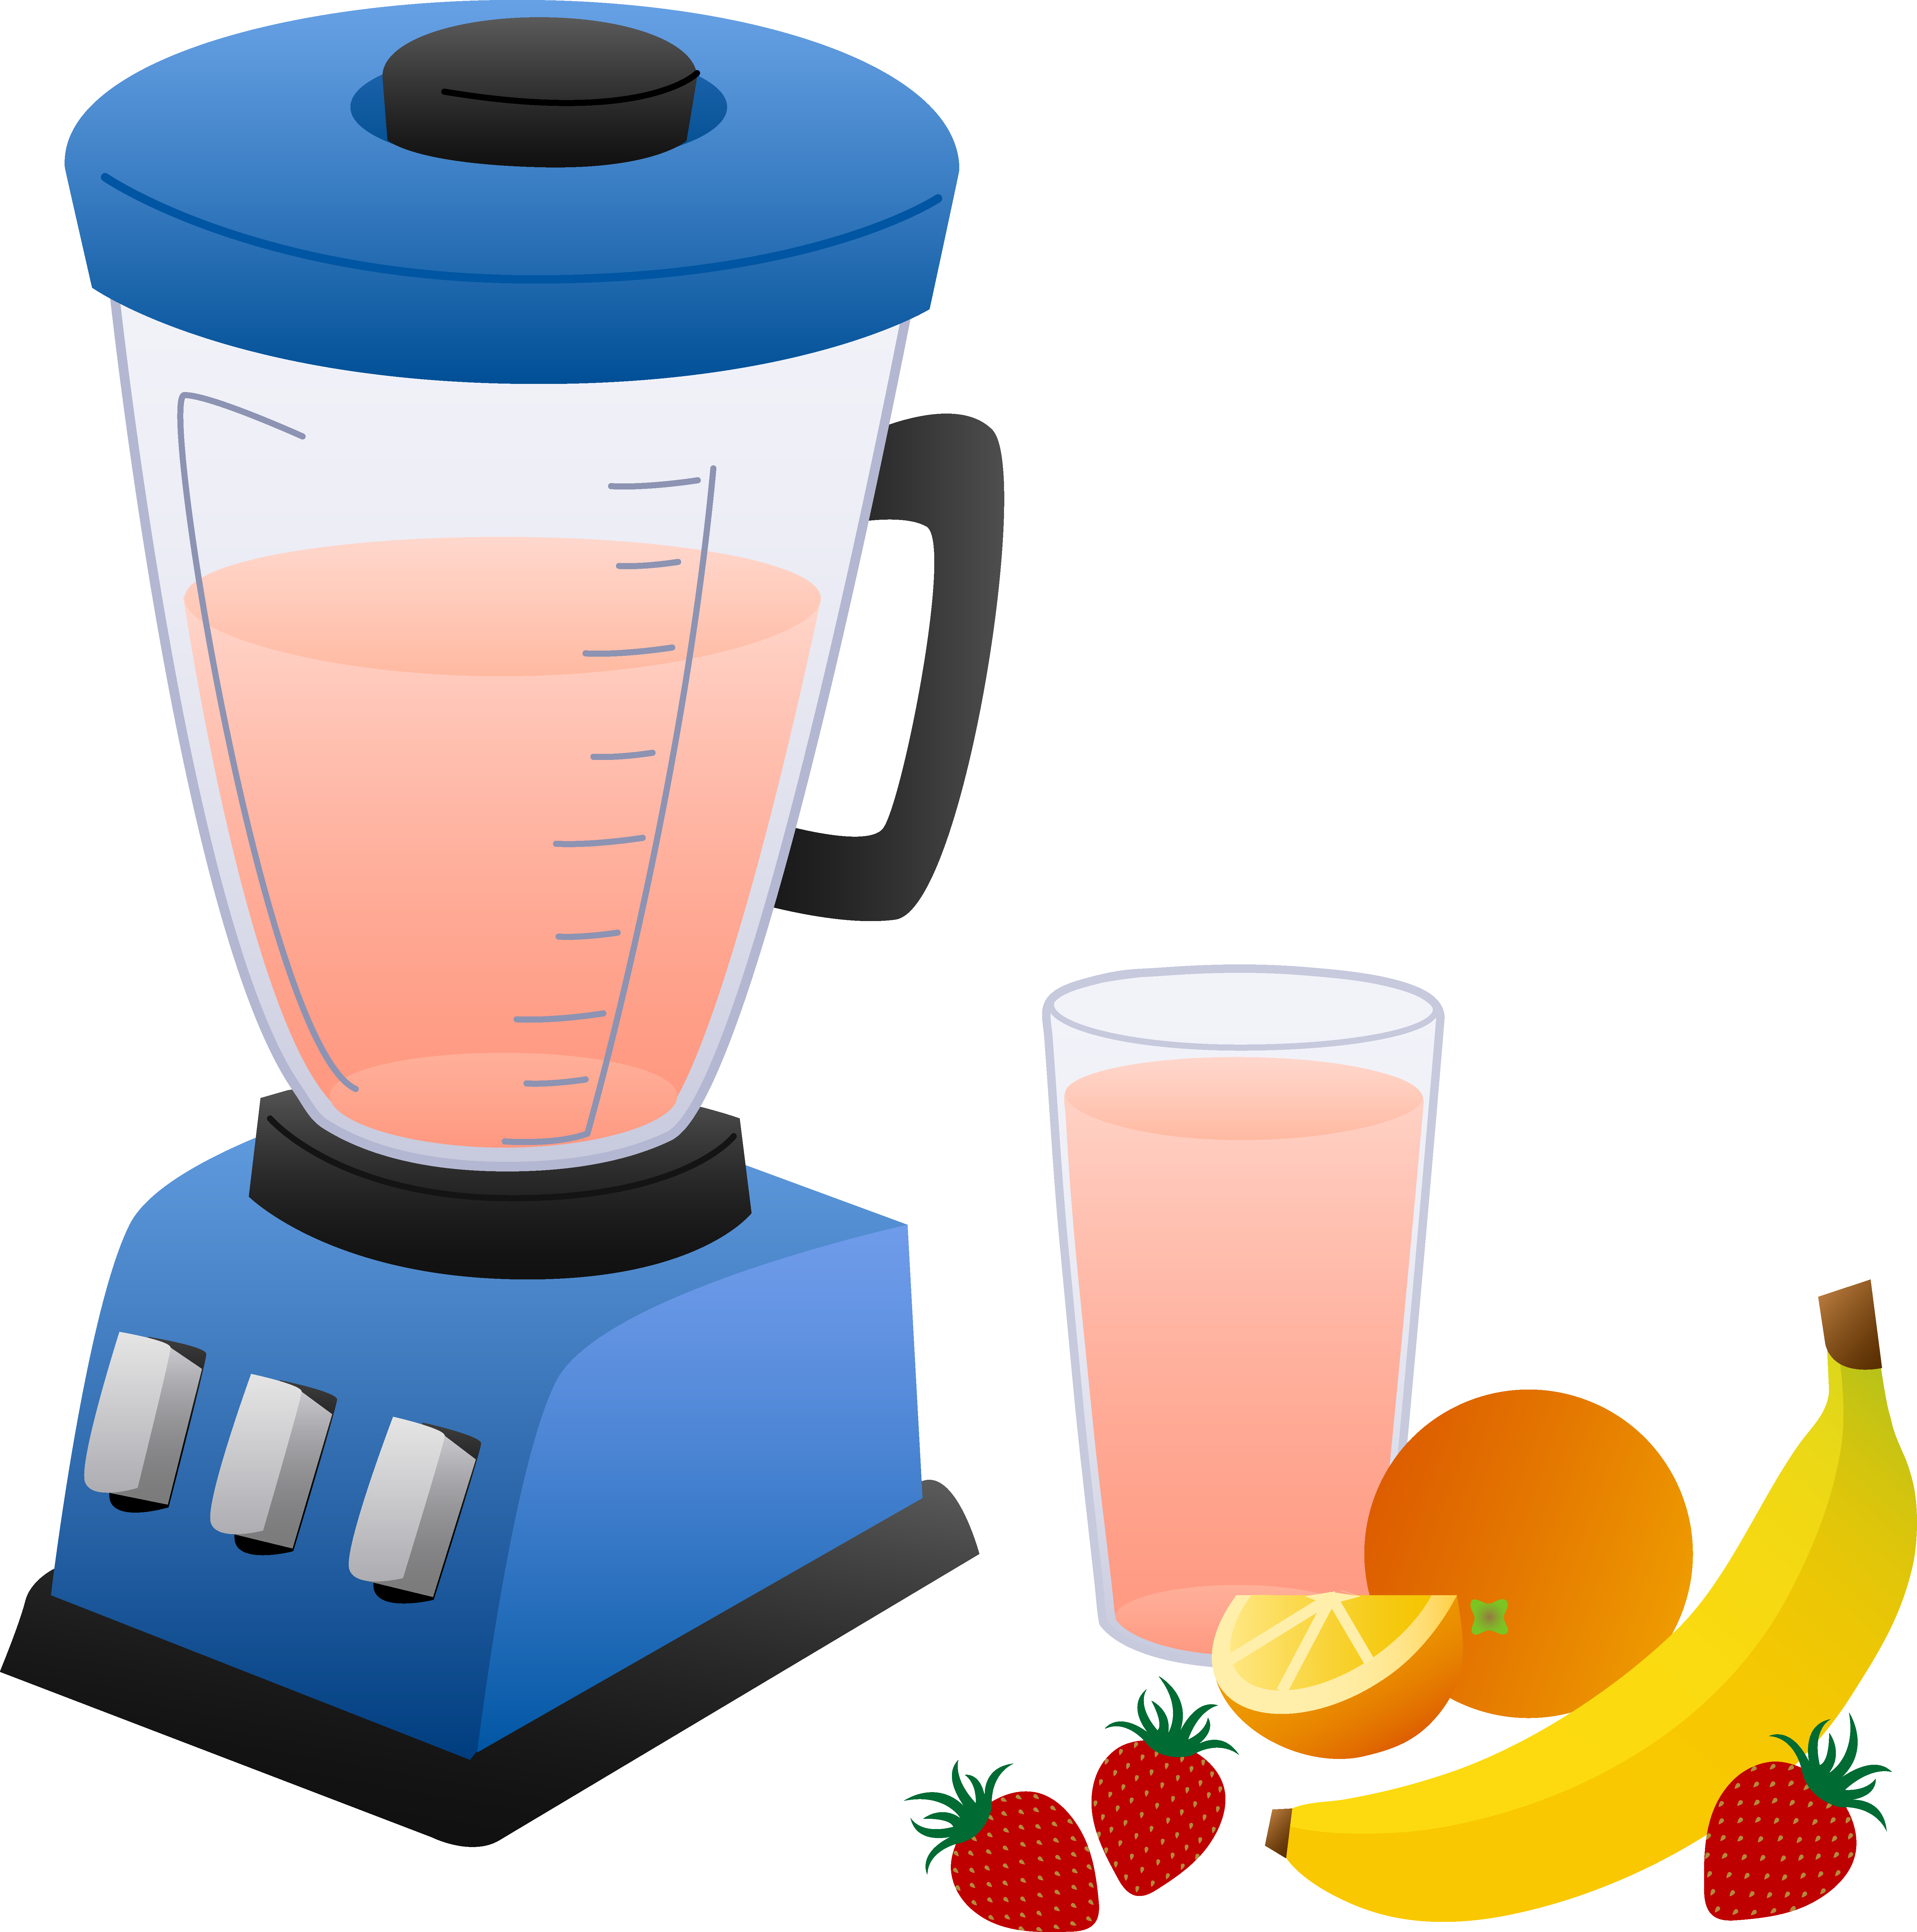 Recipe clipart smoothie maker. Advantages of using a